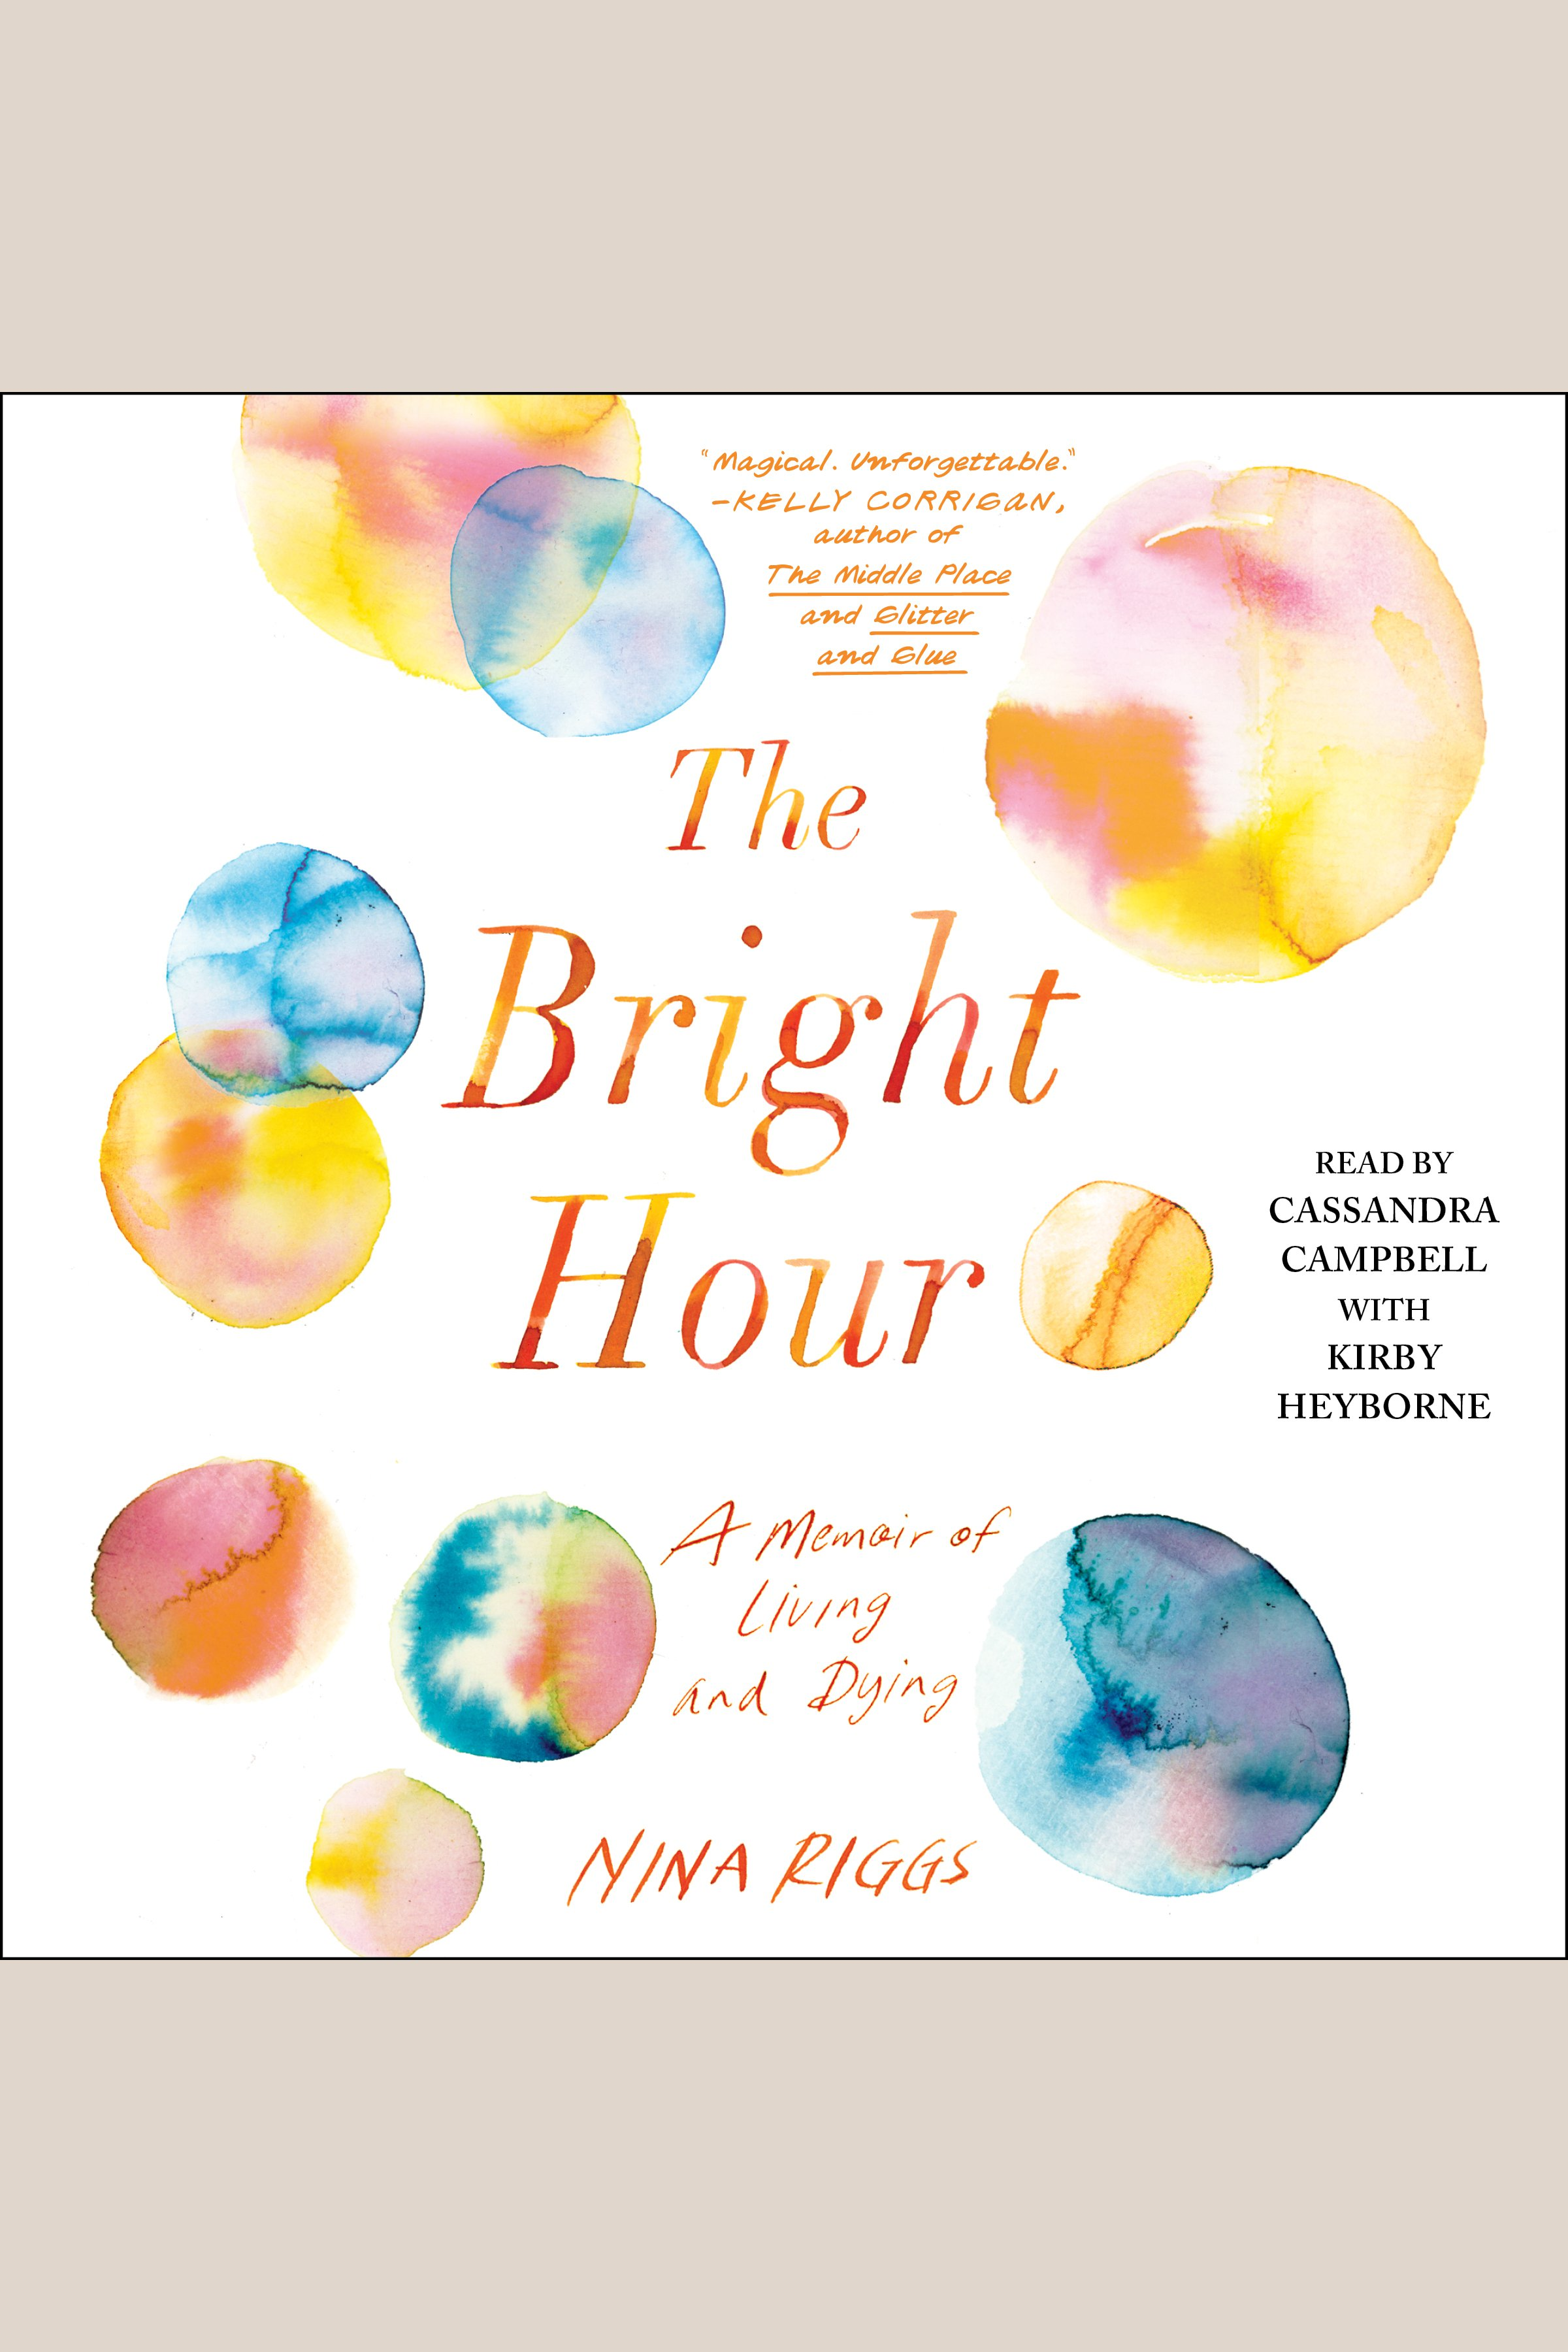 The bright hour a memoir of living and dying cover image